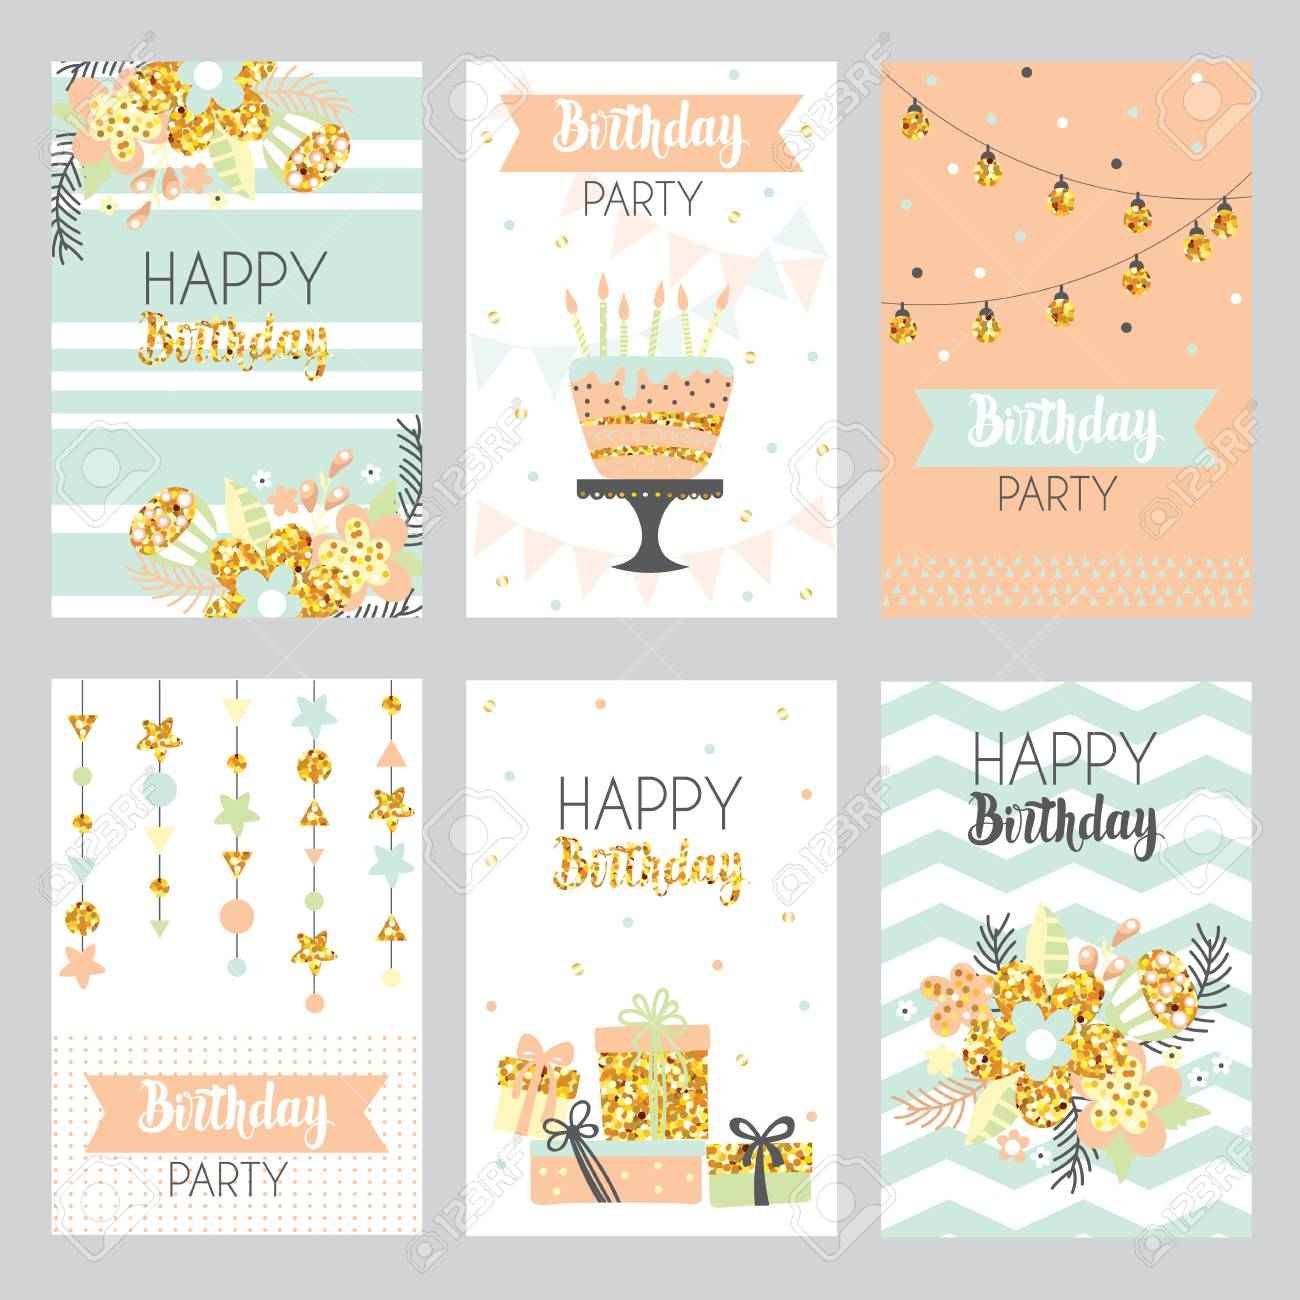 Happy Birthday Card With Golden Sparkle Cake Flowers Gift